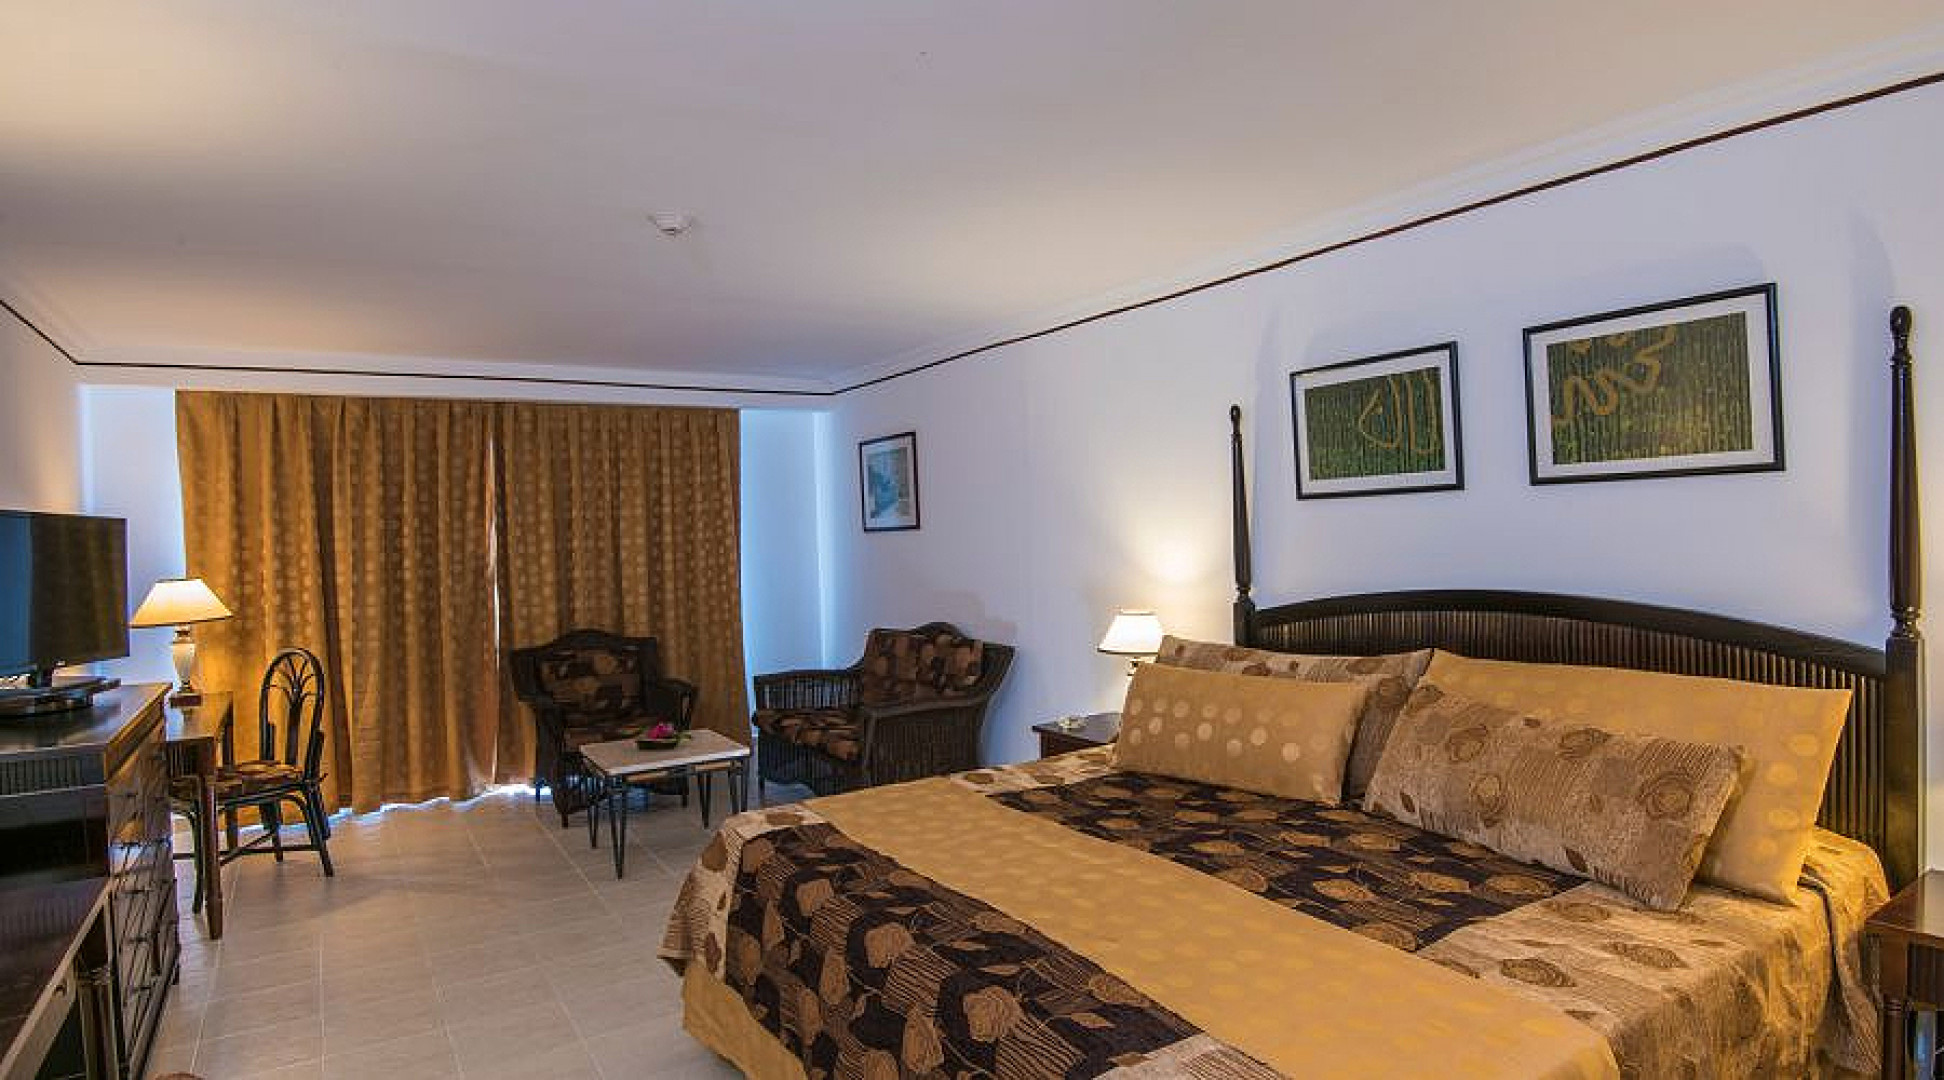 Hotel Playa Coco - Chambre double - 1